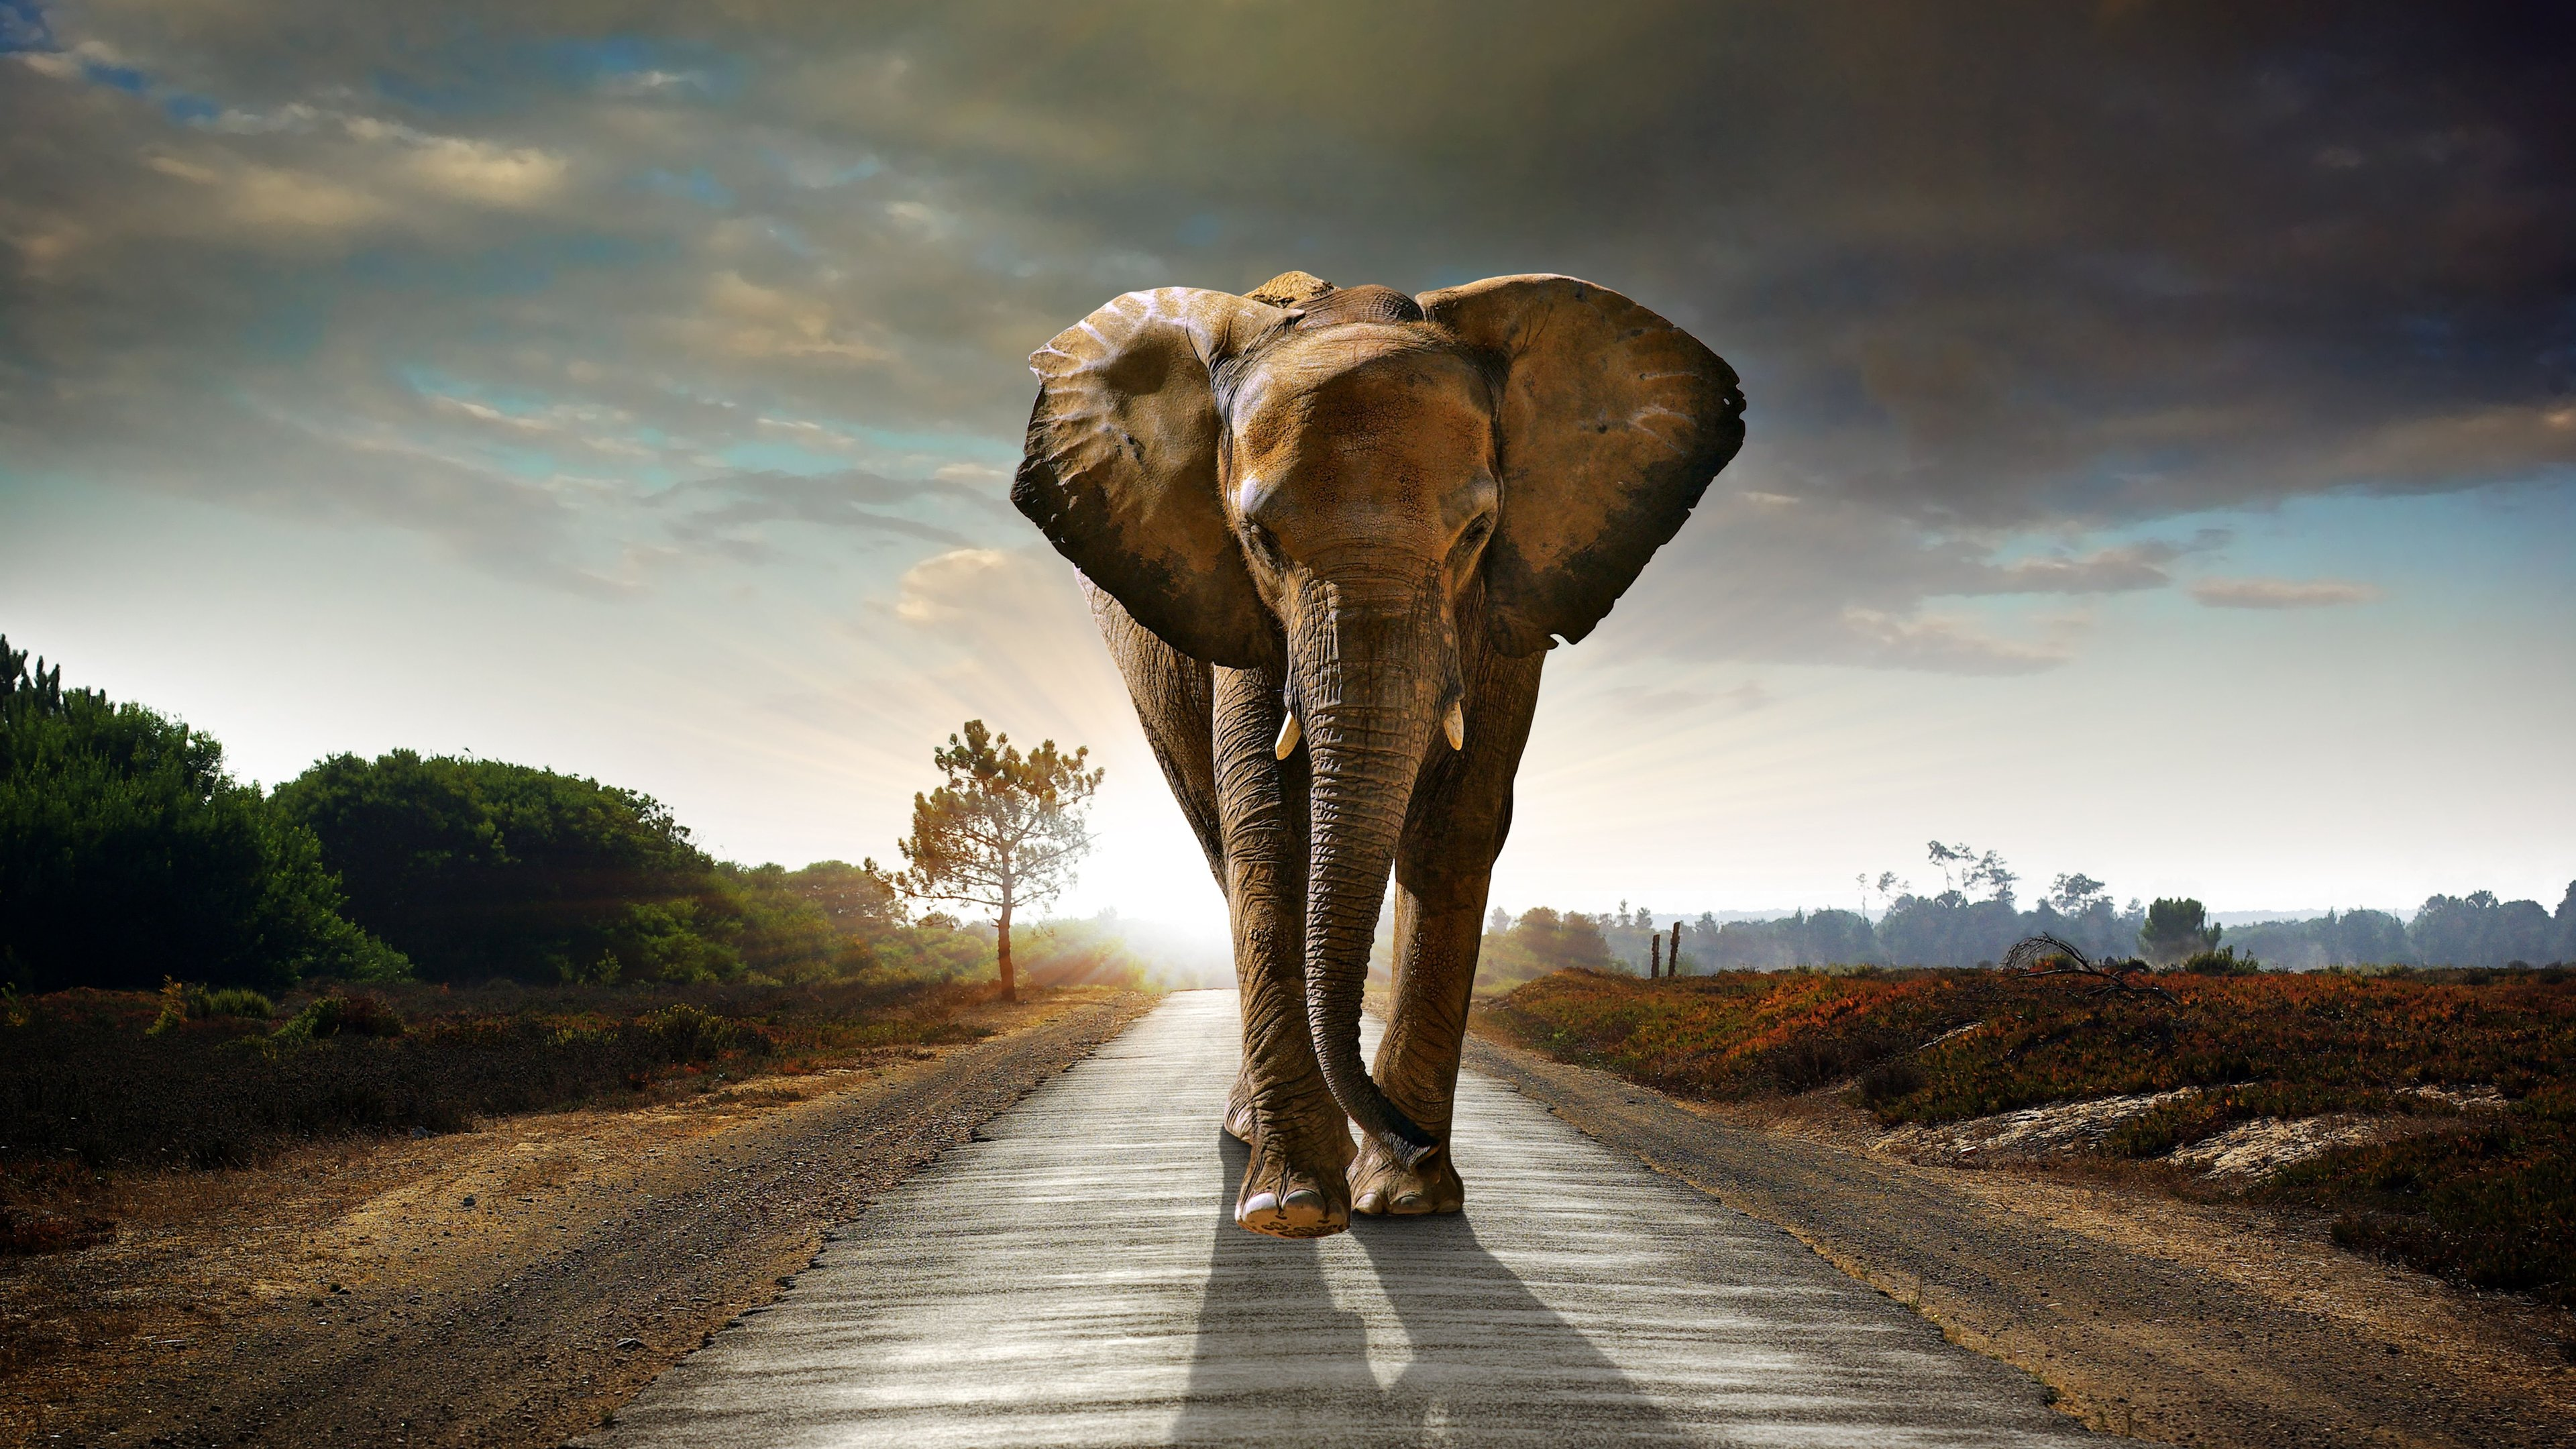 Wallpaper 4k Elephant Walking On The Road Hdr 4k 4k Wallpapers Animals Wallpapers Elephant Wallpapers Hd Wallpapers Road Wallpapers Walking Wallpapers